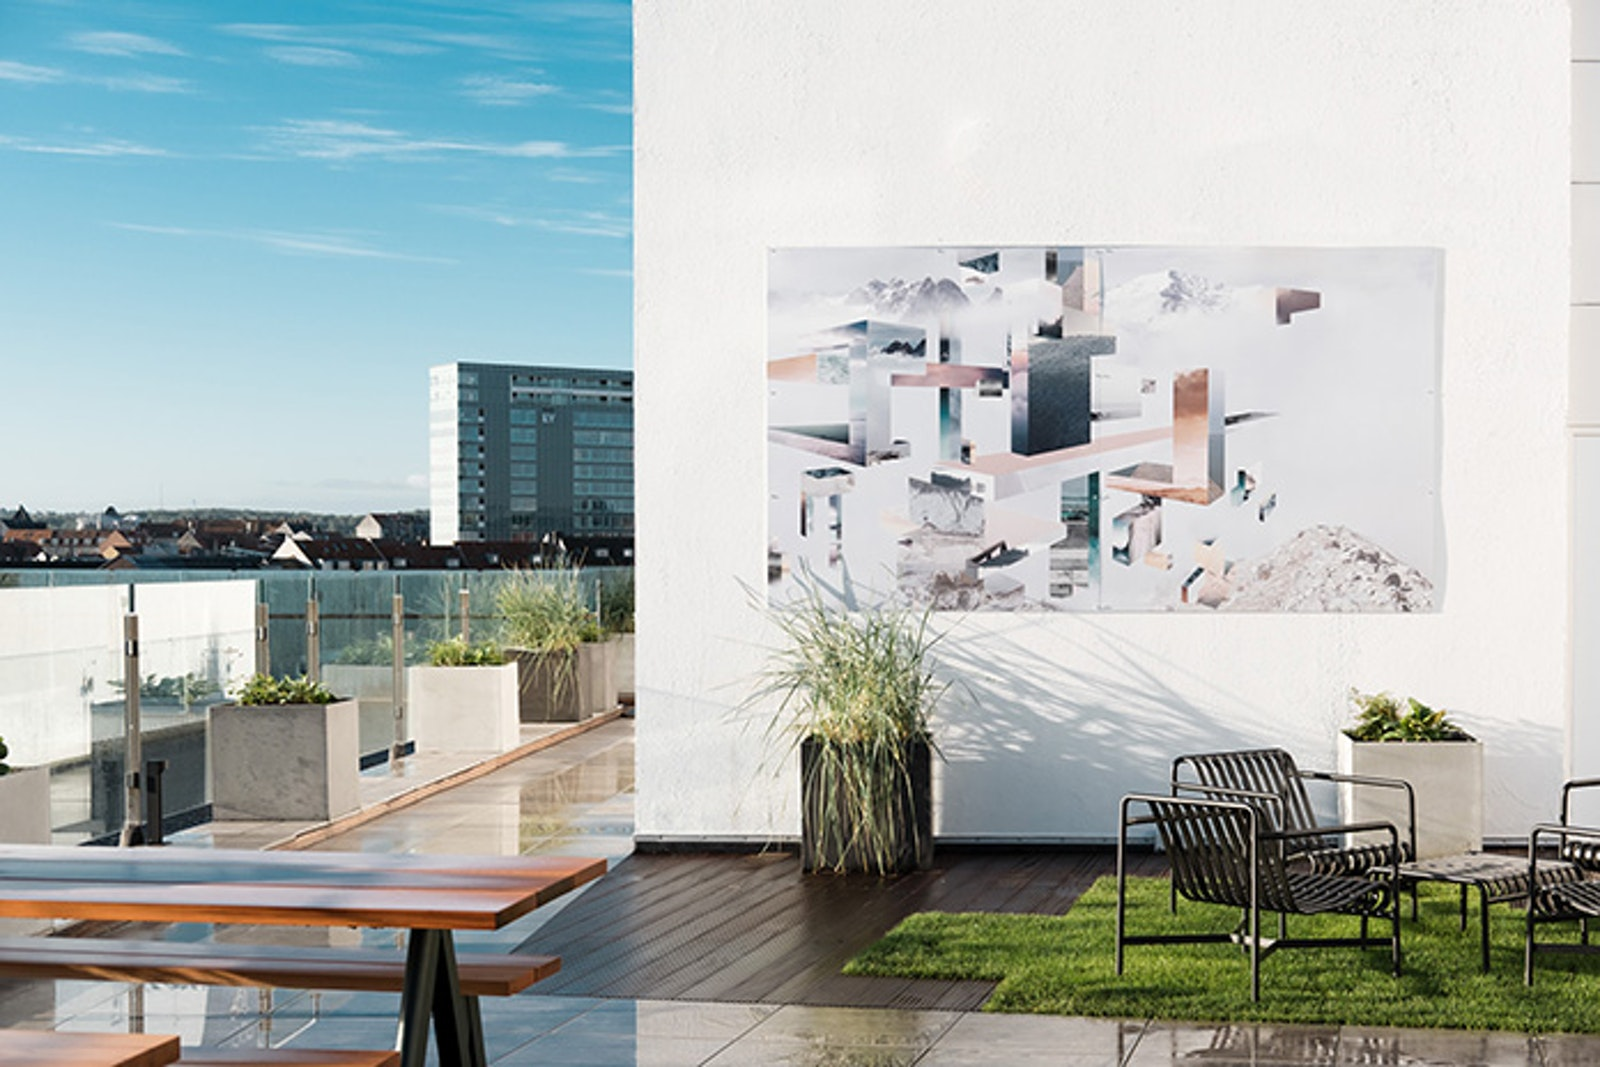 Bespoke murals at Salling Rooftop by Ruth Crone Foster